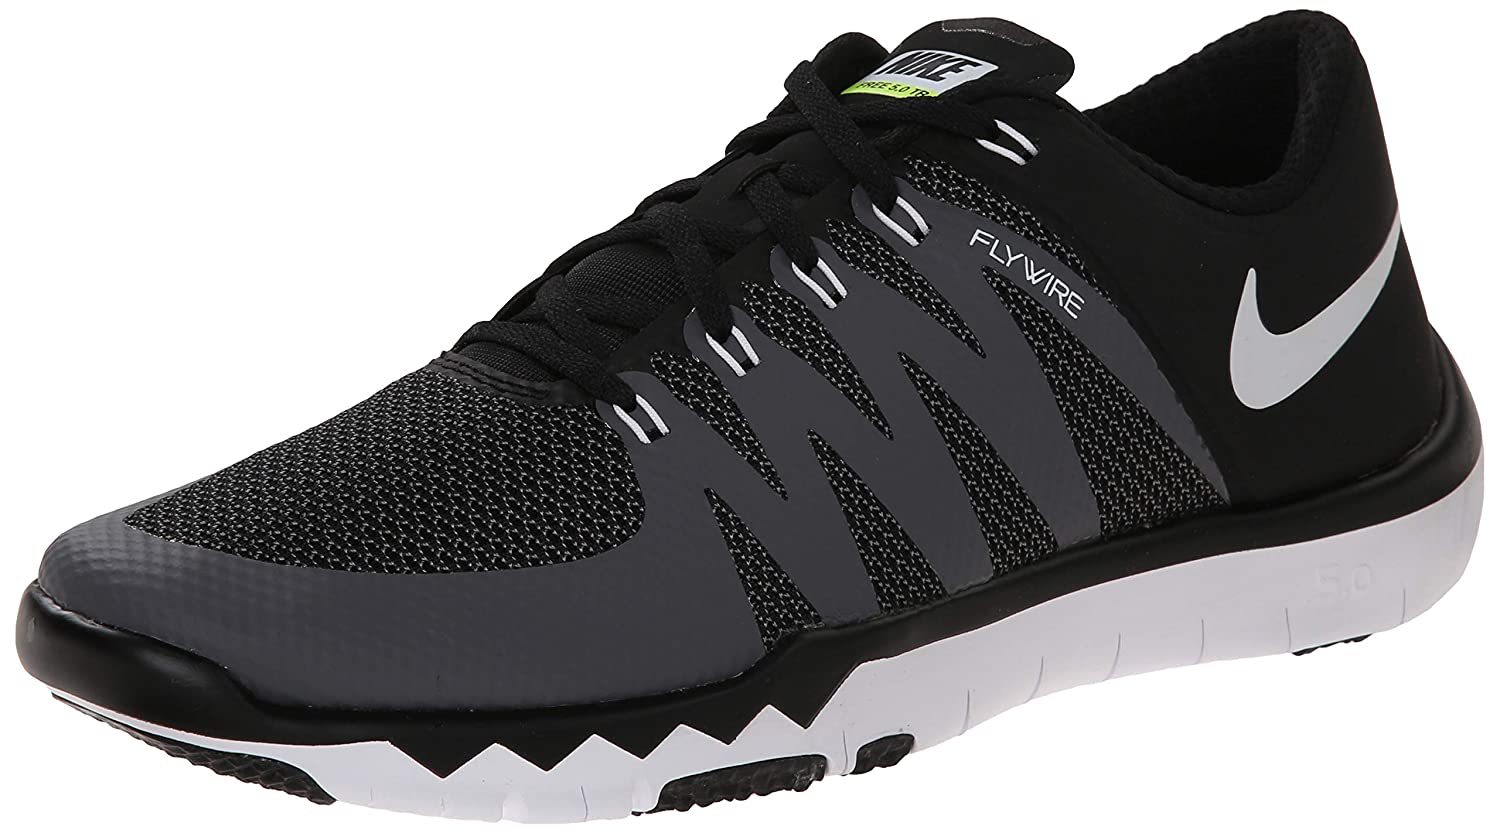 vente chaude en ligne e0839 16f2b Nike Free 5.0, Men's Running Shoes